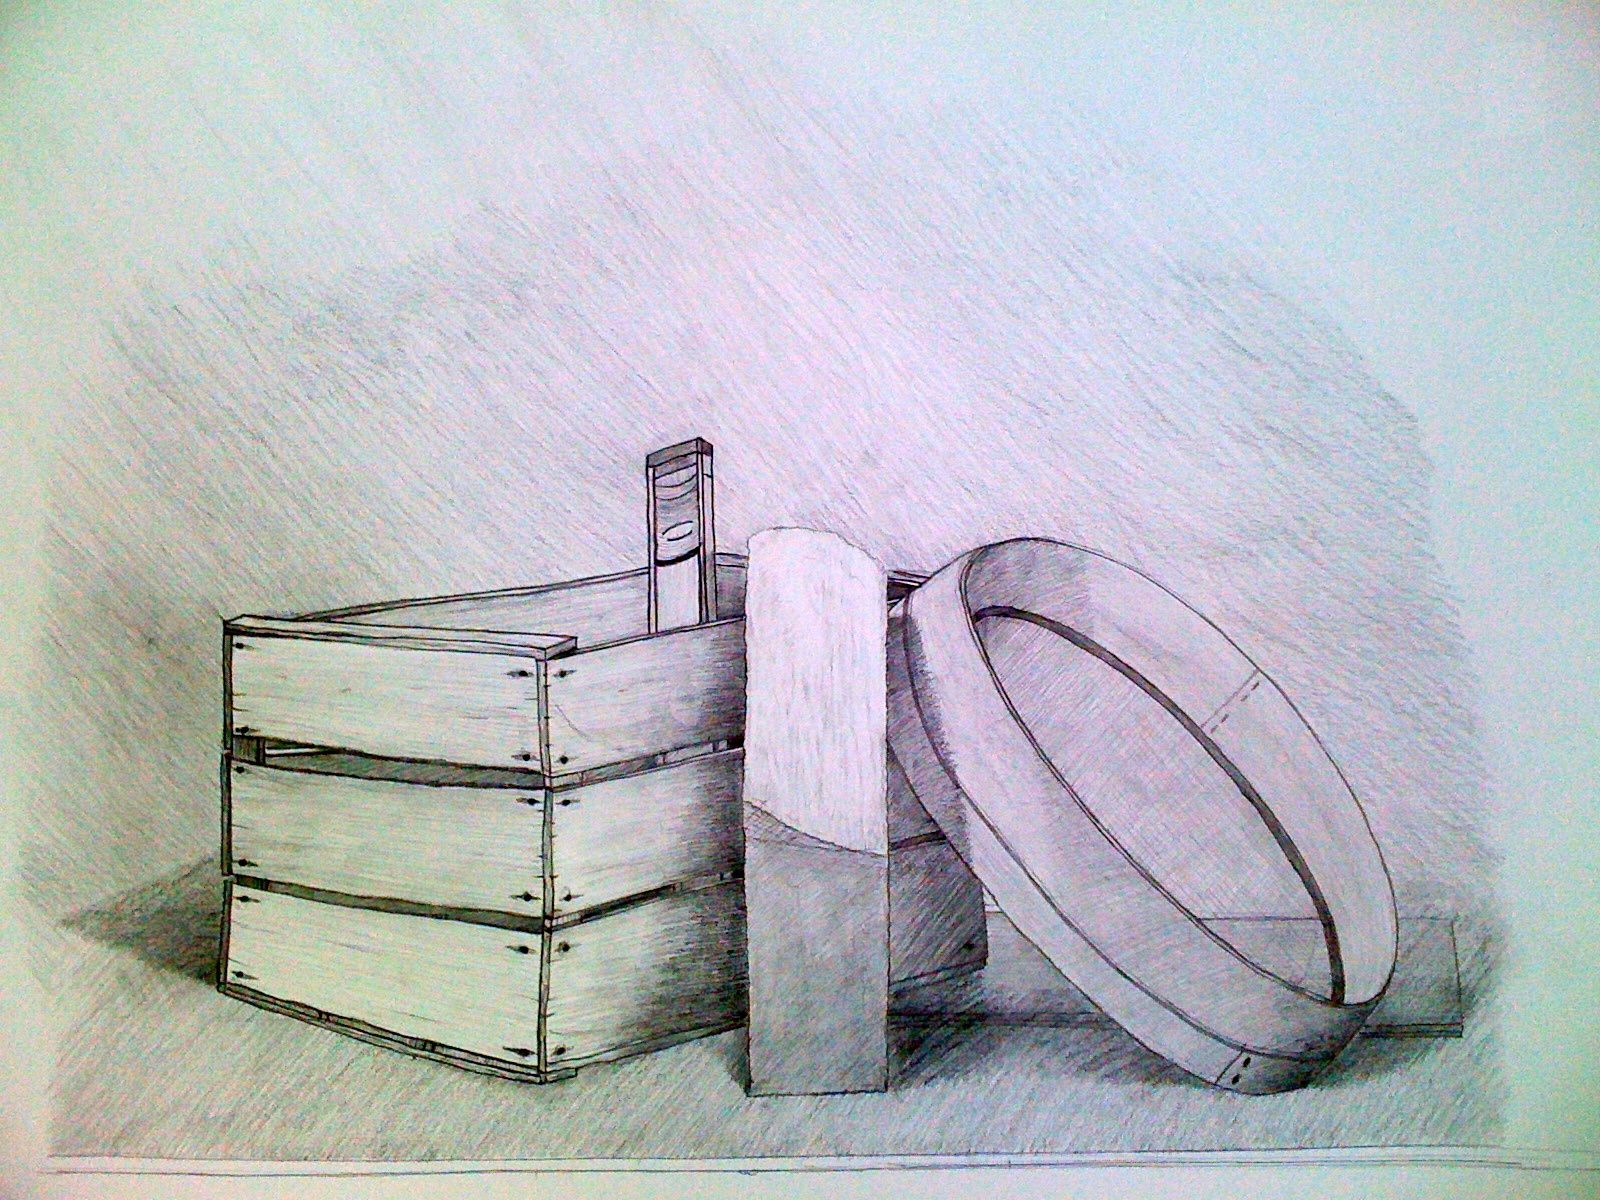 Pr sentation mozz 39 a que - Dessin nature morte ...